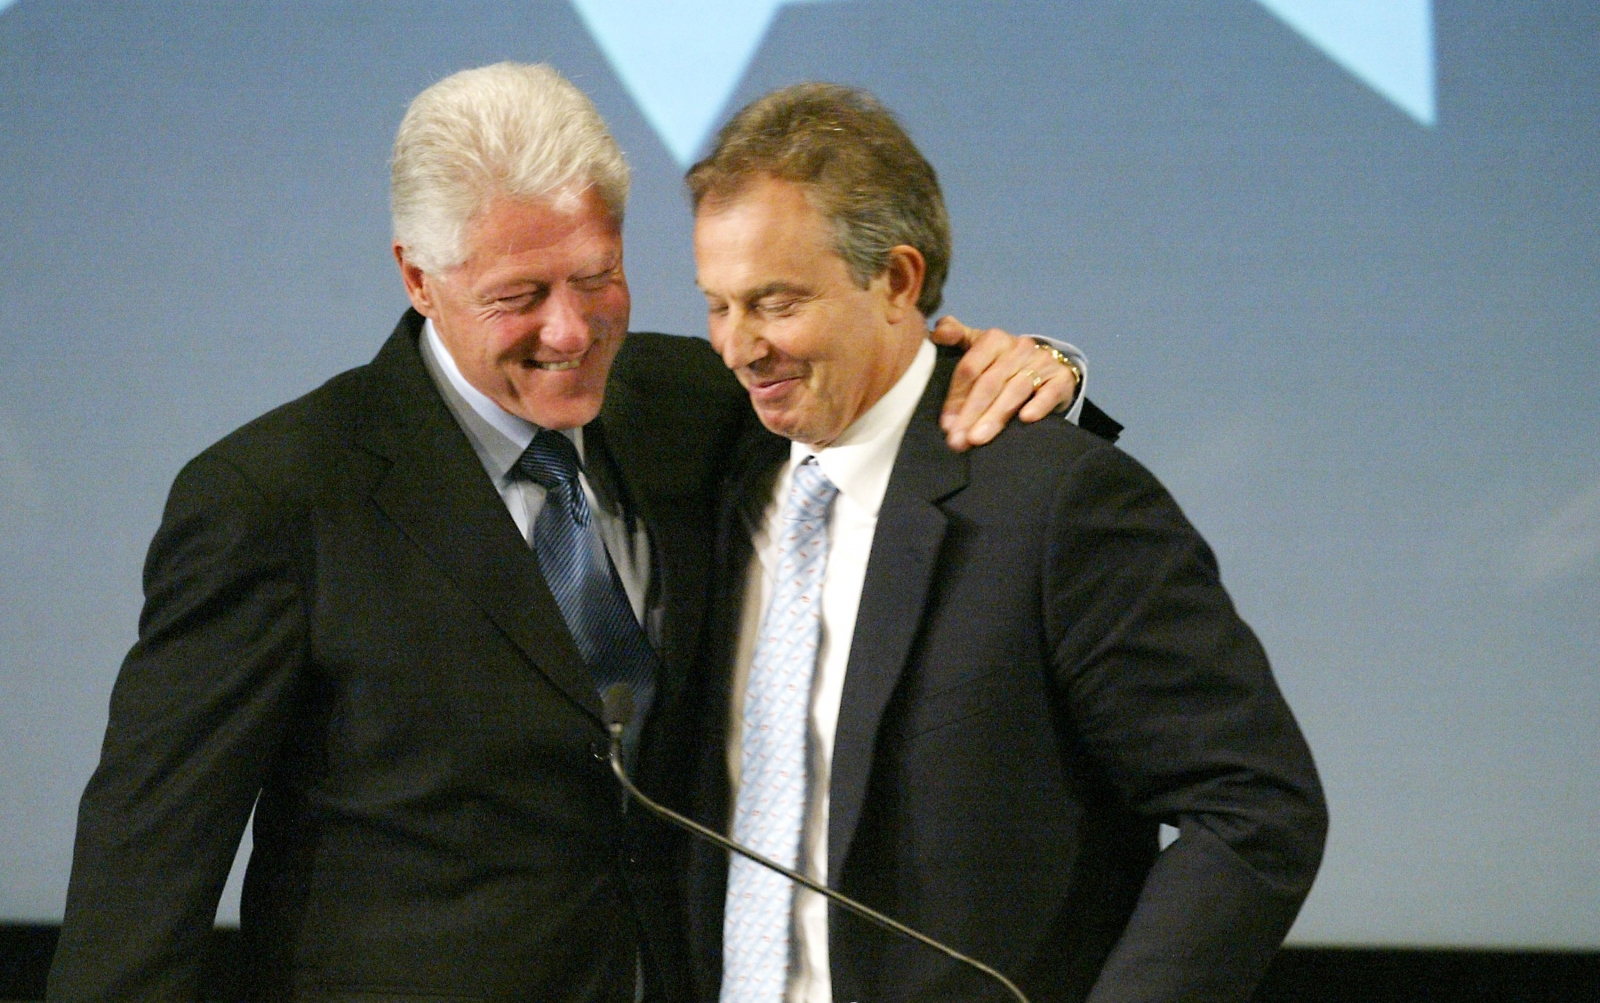 Tony Blair: Former PM questions whether centrism has future in Western ...